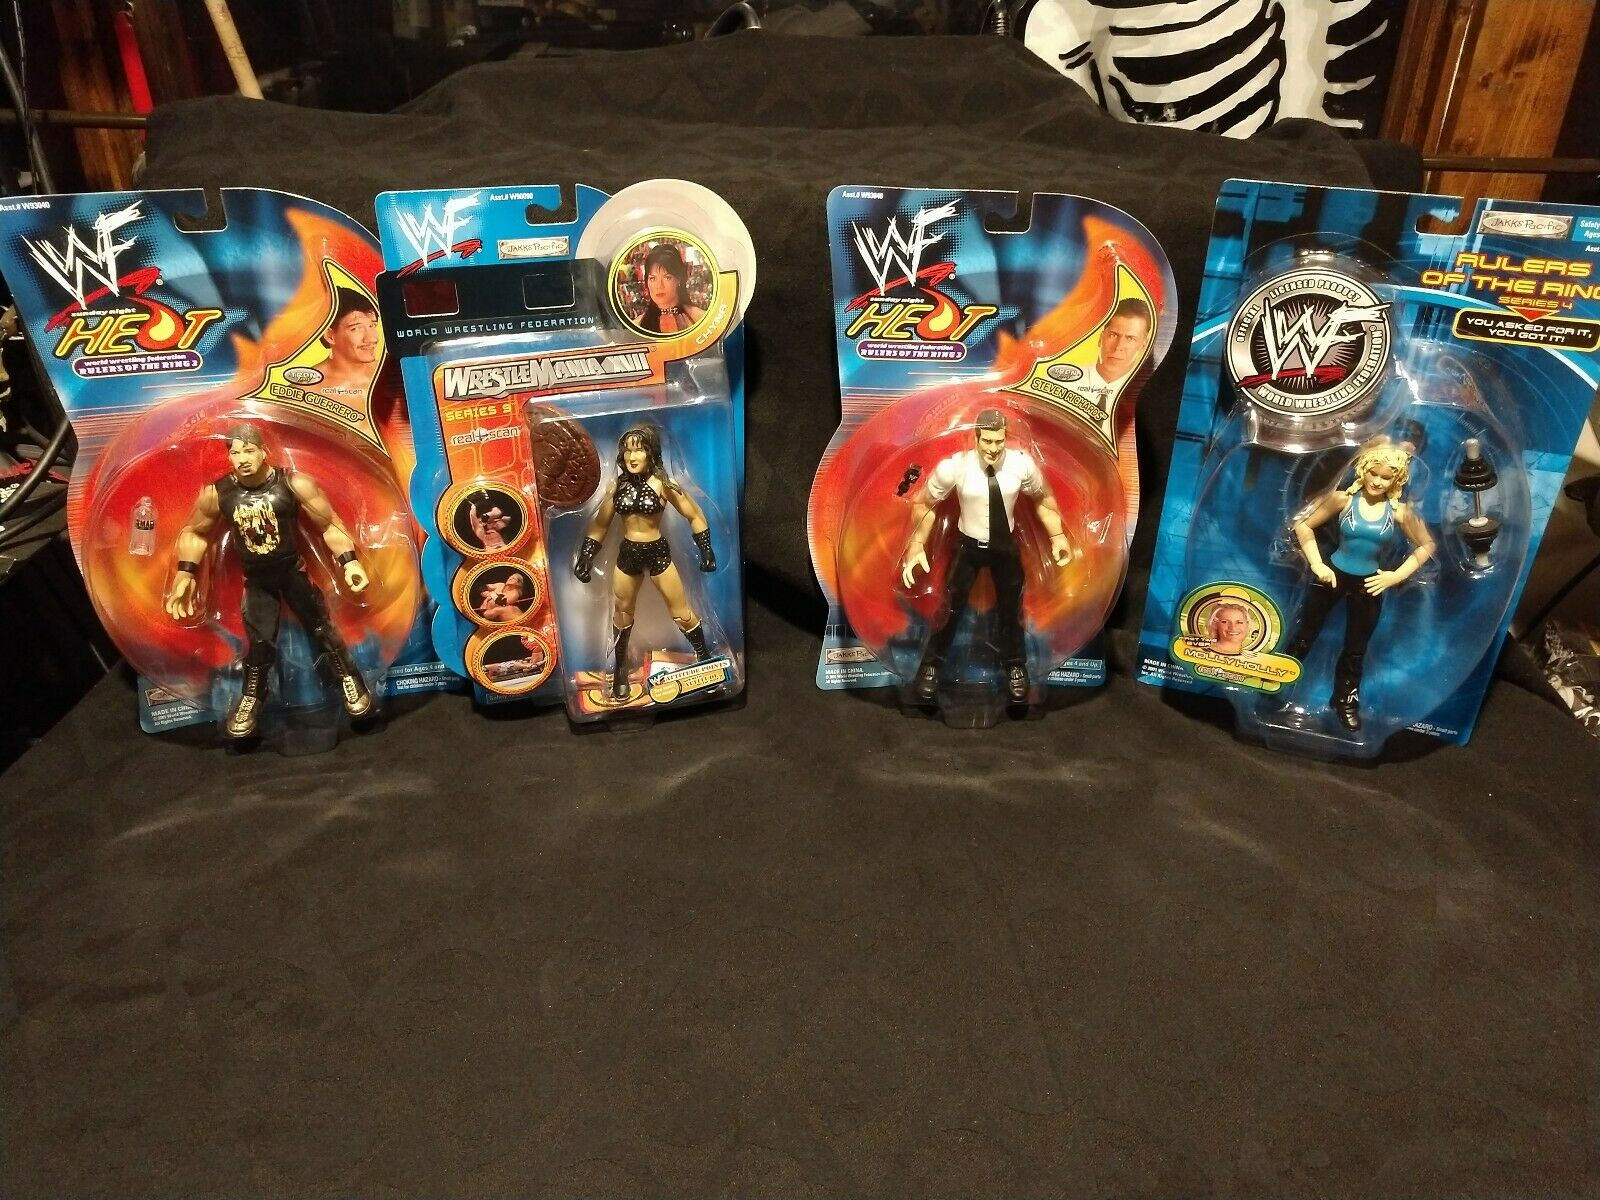 NEW WWF WWE Lot of 4 action figures Chyna, Eddie Guerrero, Molly Holly, Richards